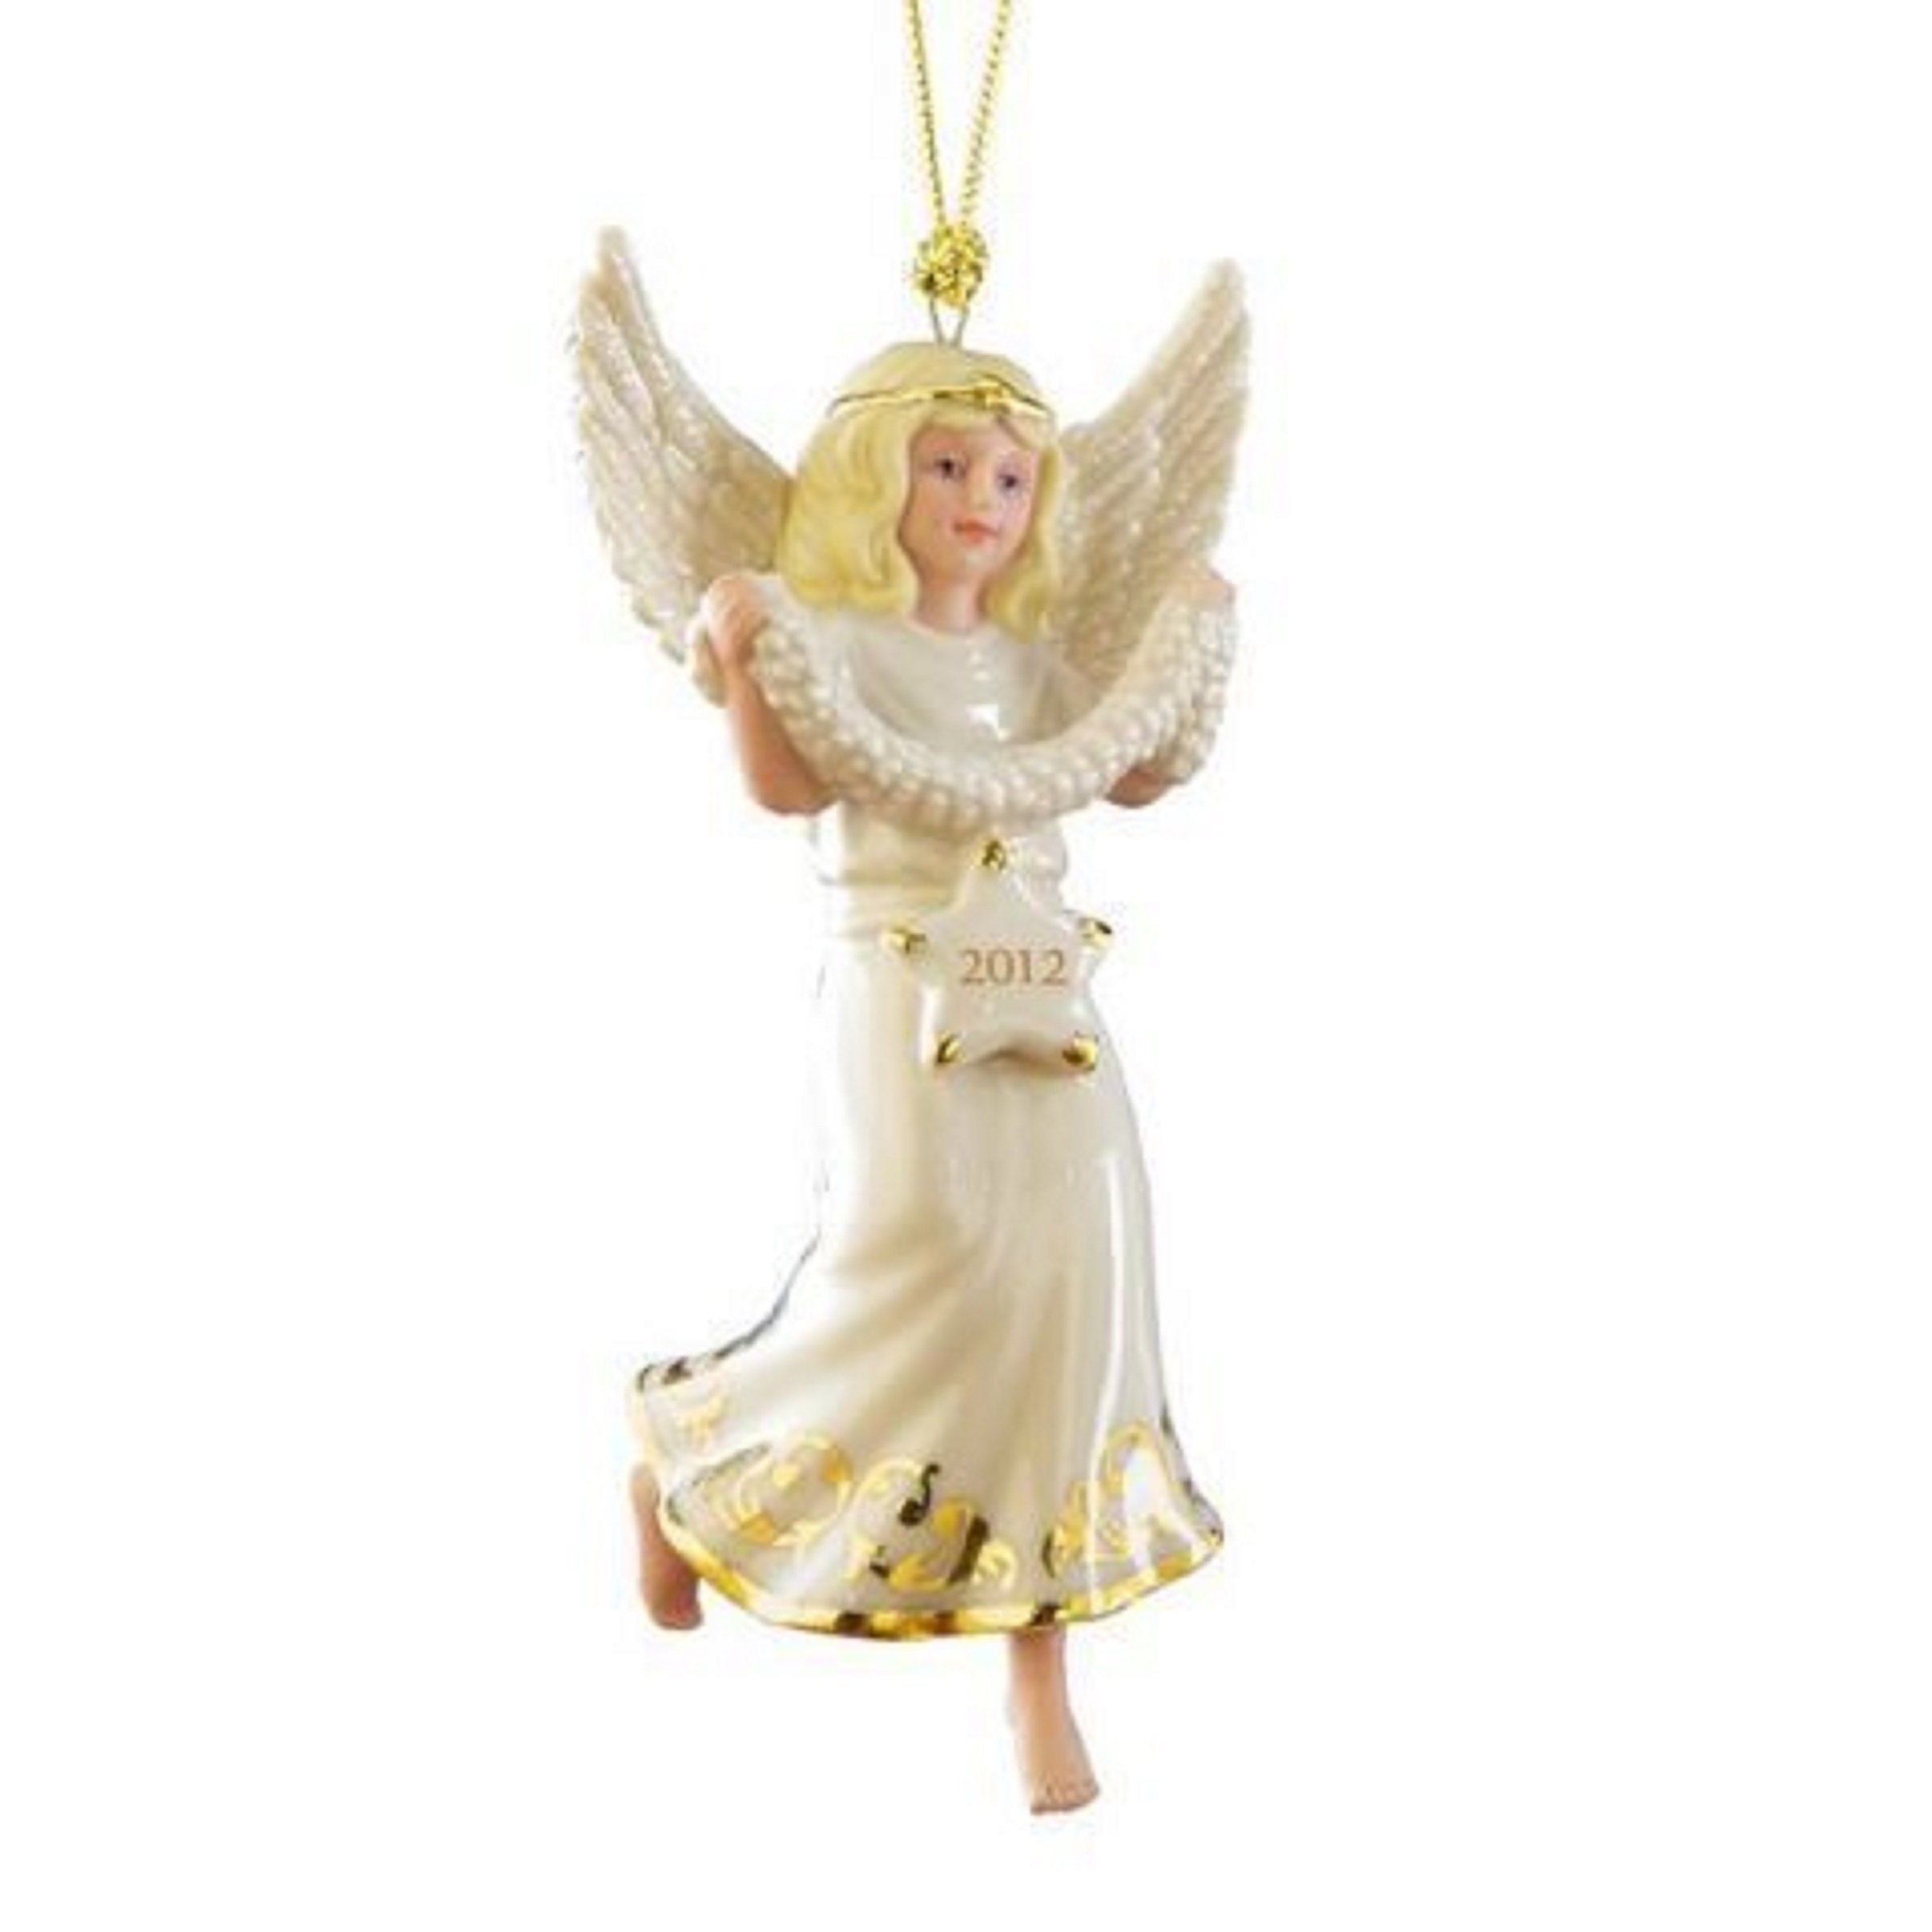 Lenox Christmas 2012 Annual Stargazer Angel Ornament Blonde Figurine Limited Edition